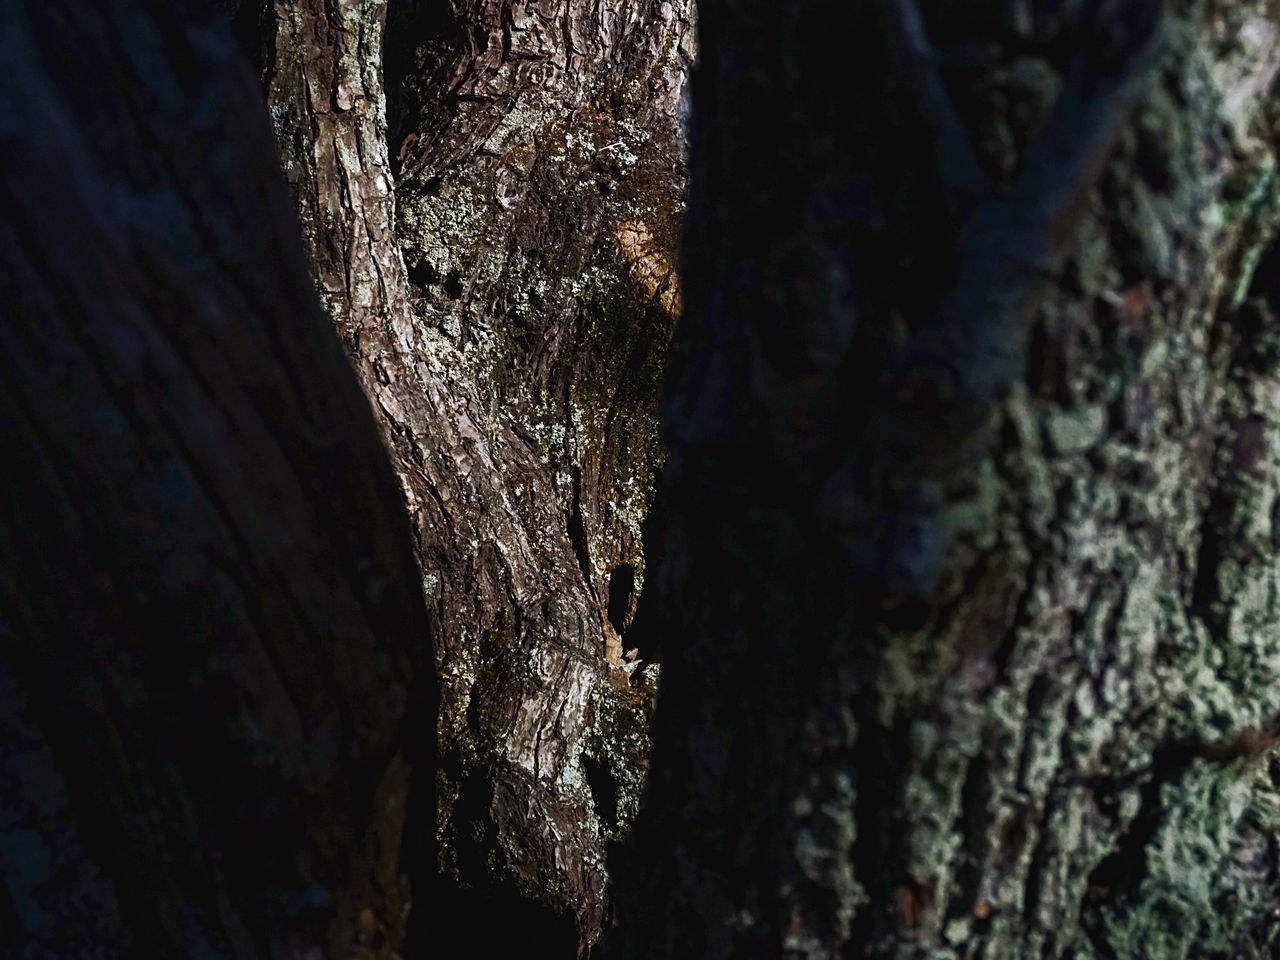 tree trunk, tree, bark, textured, nature, growth, day, no people, rough, outdoors, beauty in nature, close-up, forest, moss, lichen, branch, fungus